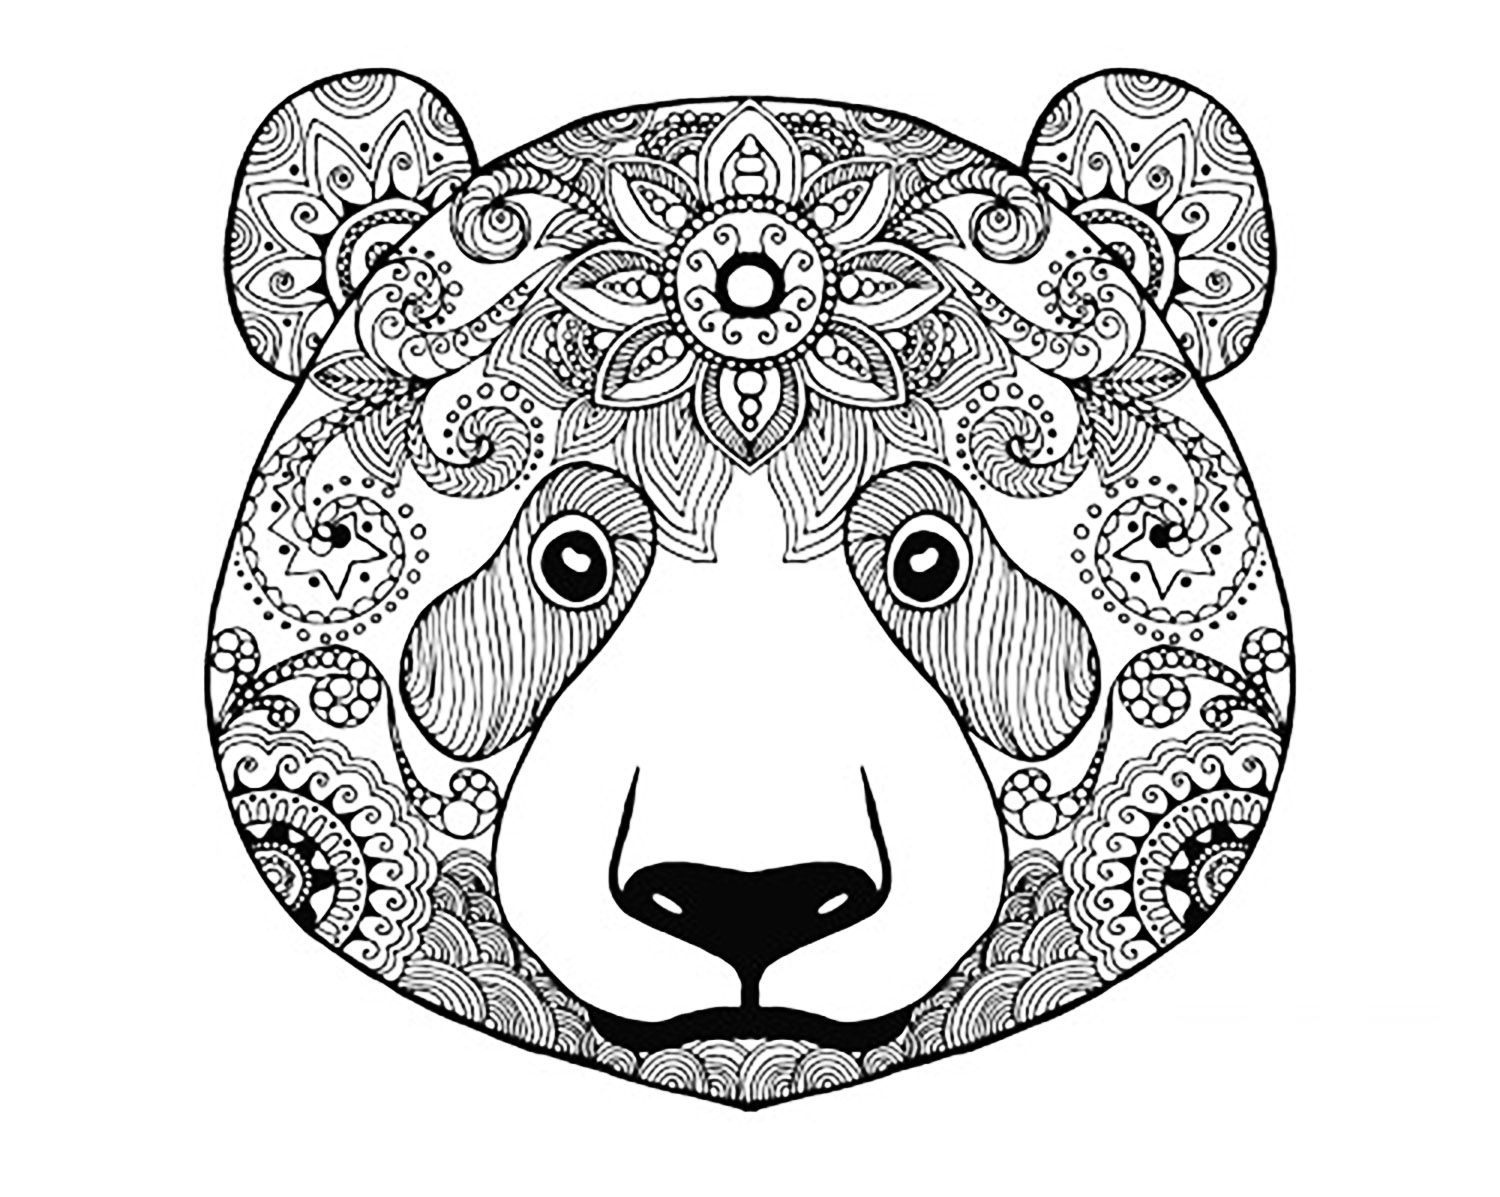 animal coloring page cute animal coloring pages best coloring pages for kids animal coloring page